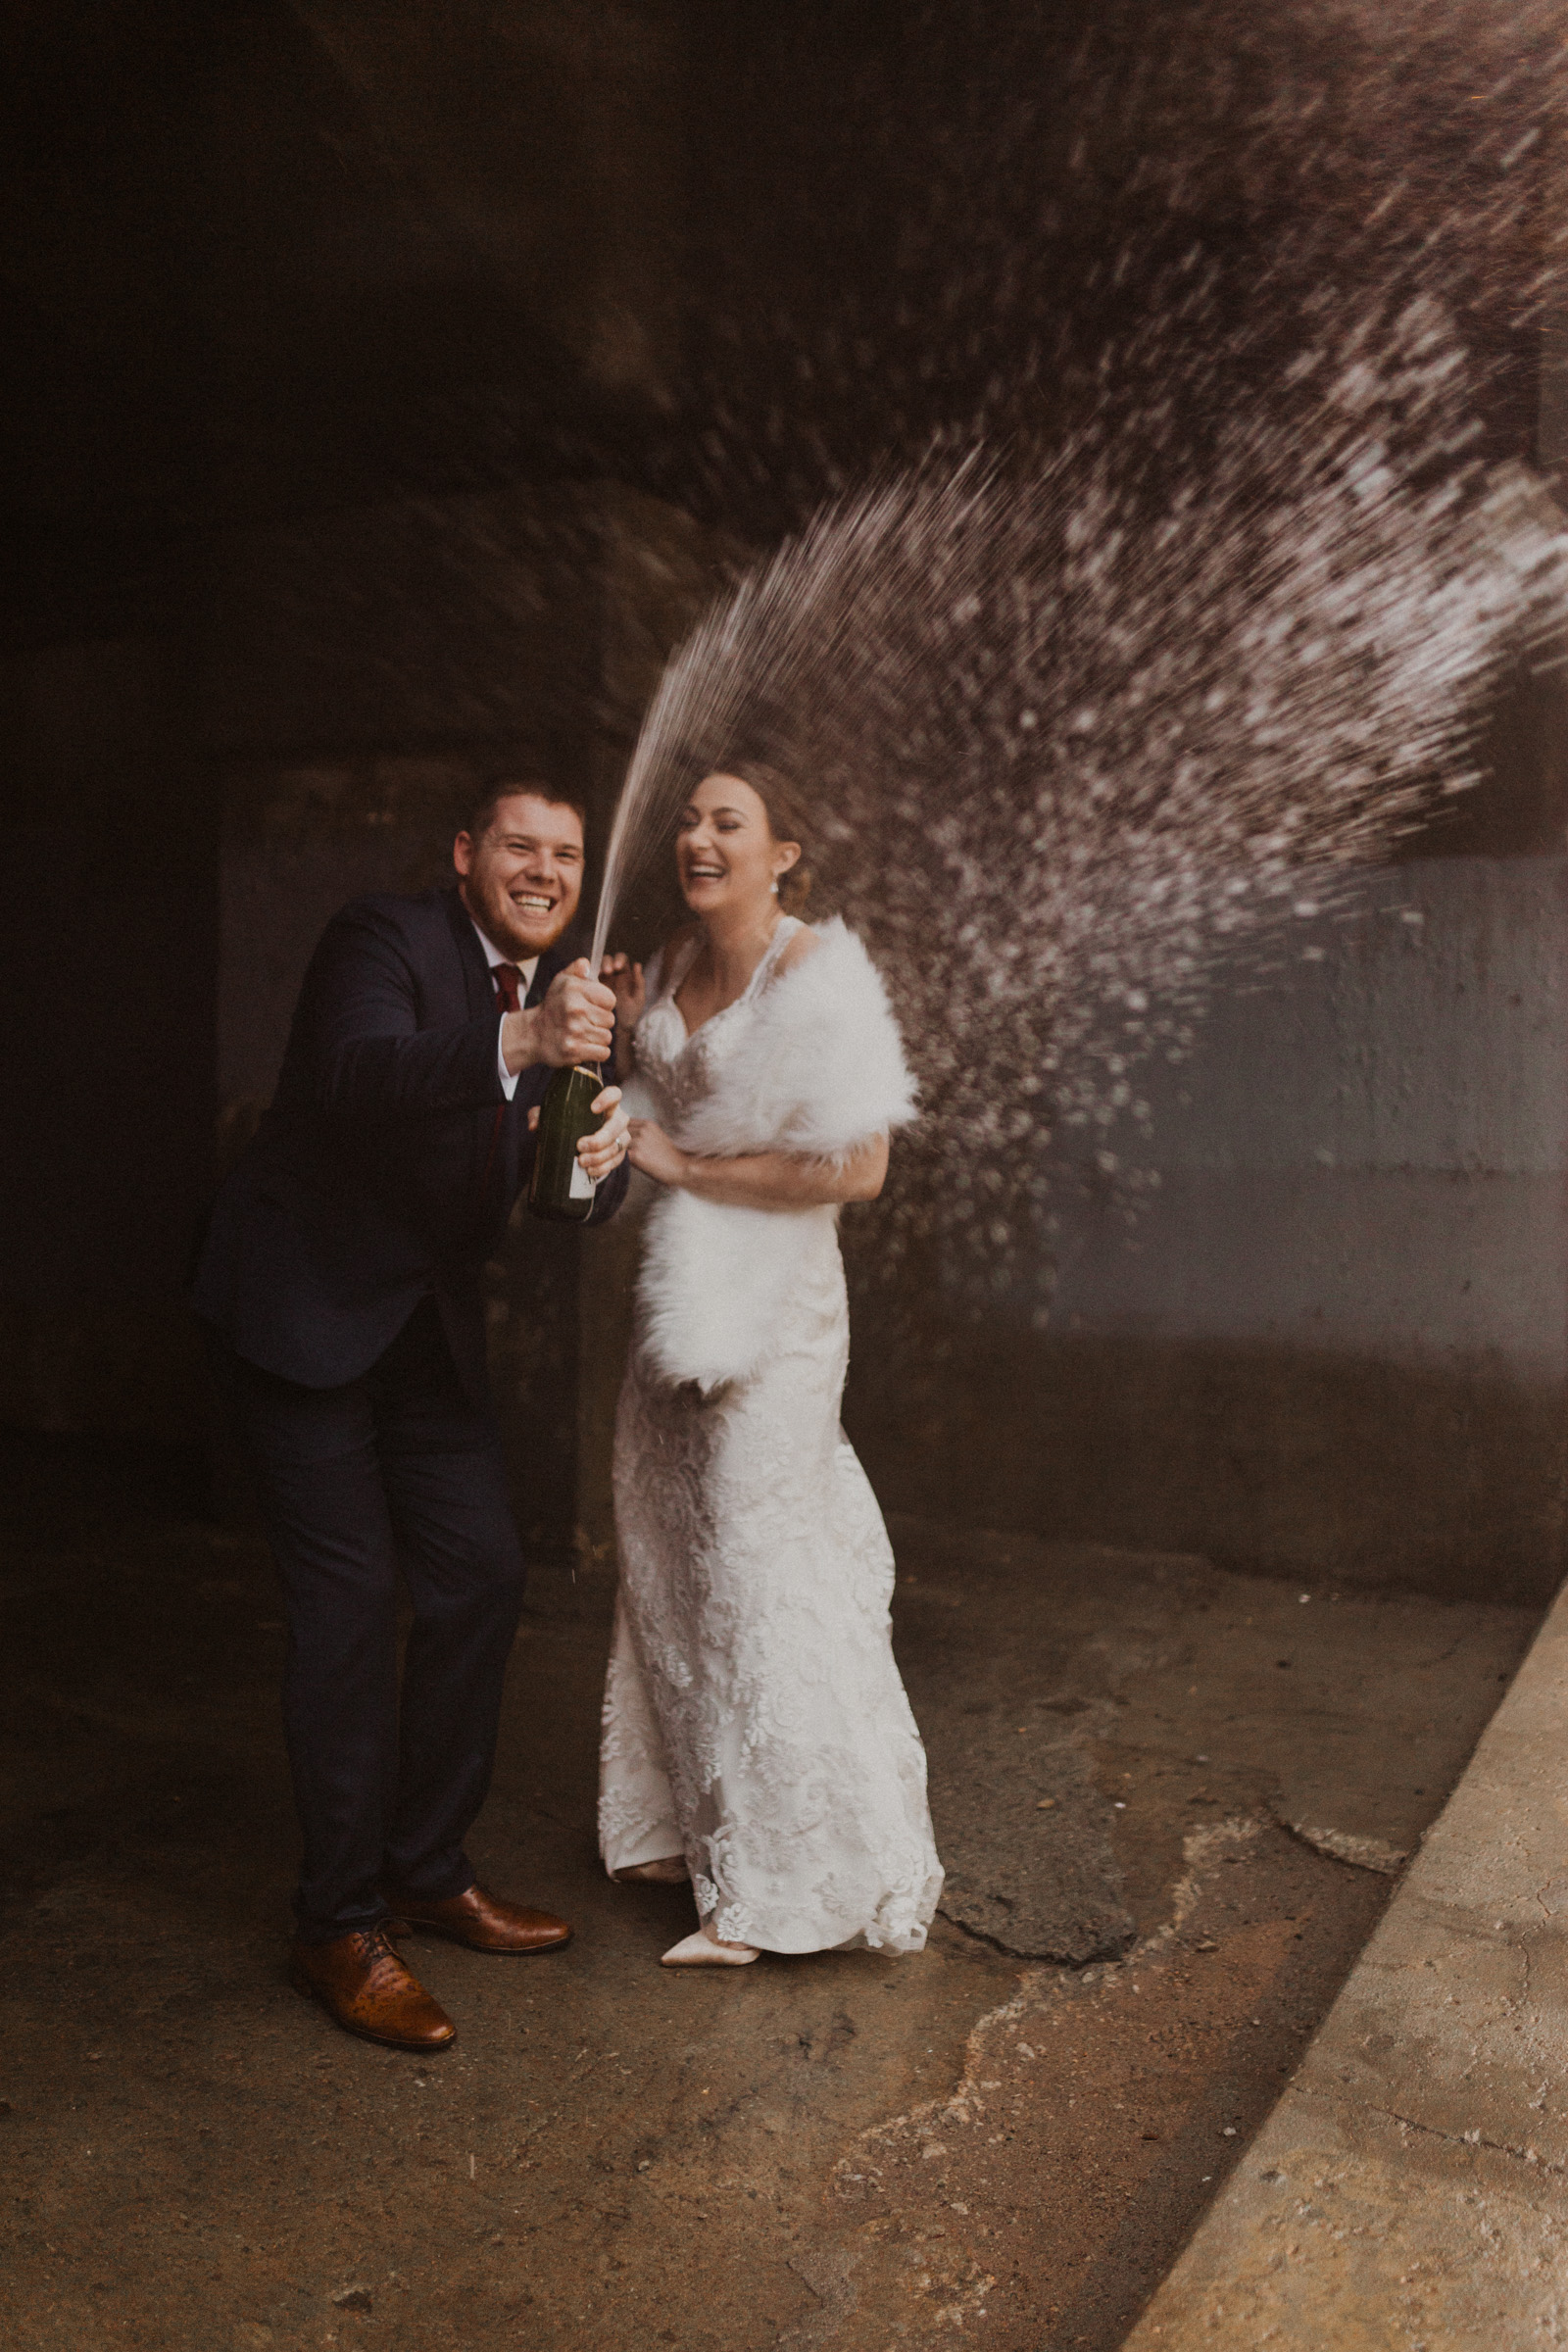 alyssa barletter photography 2016 main kansas city wedding rainy day photographer grace and justin magott-50.jpg